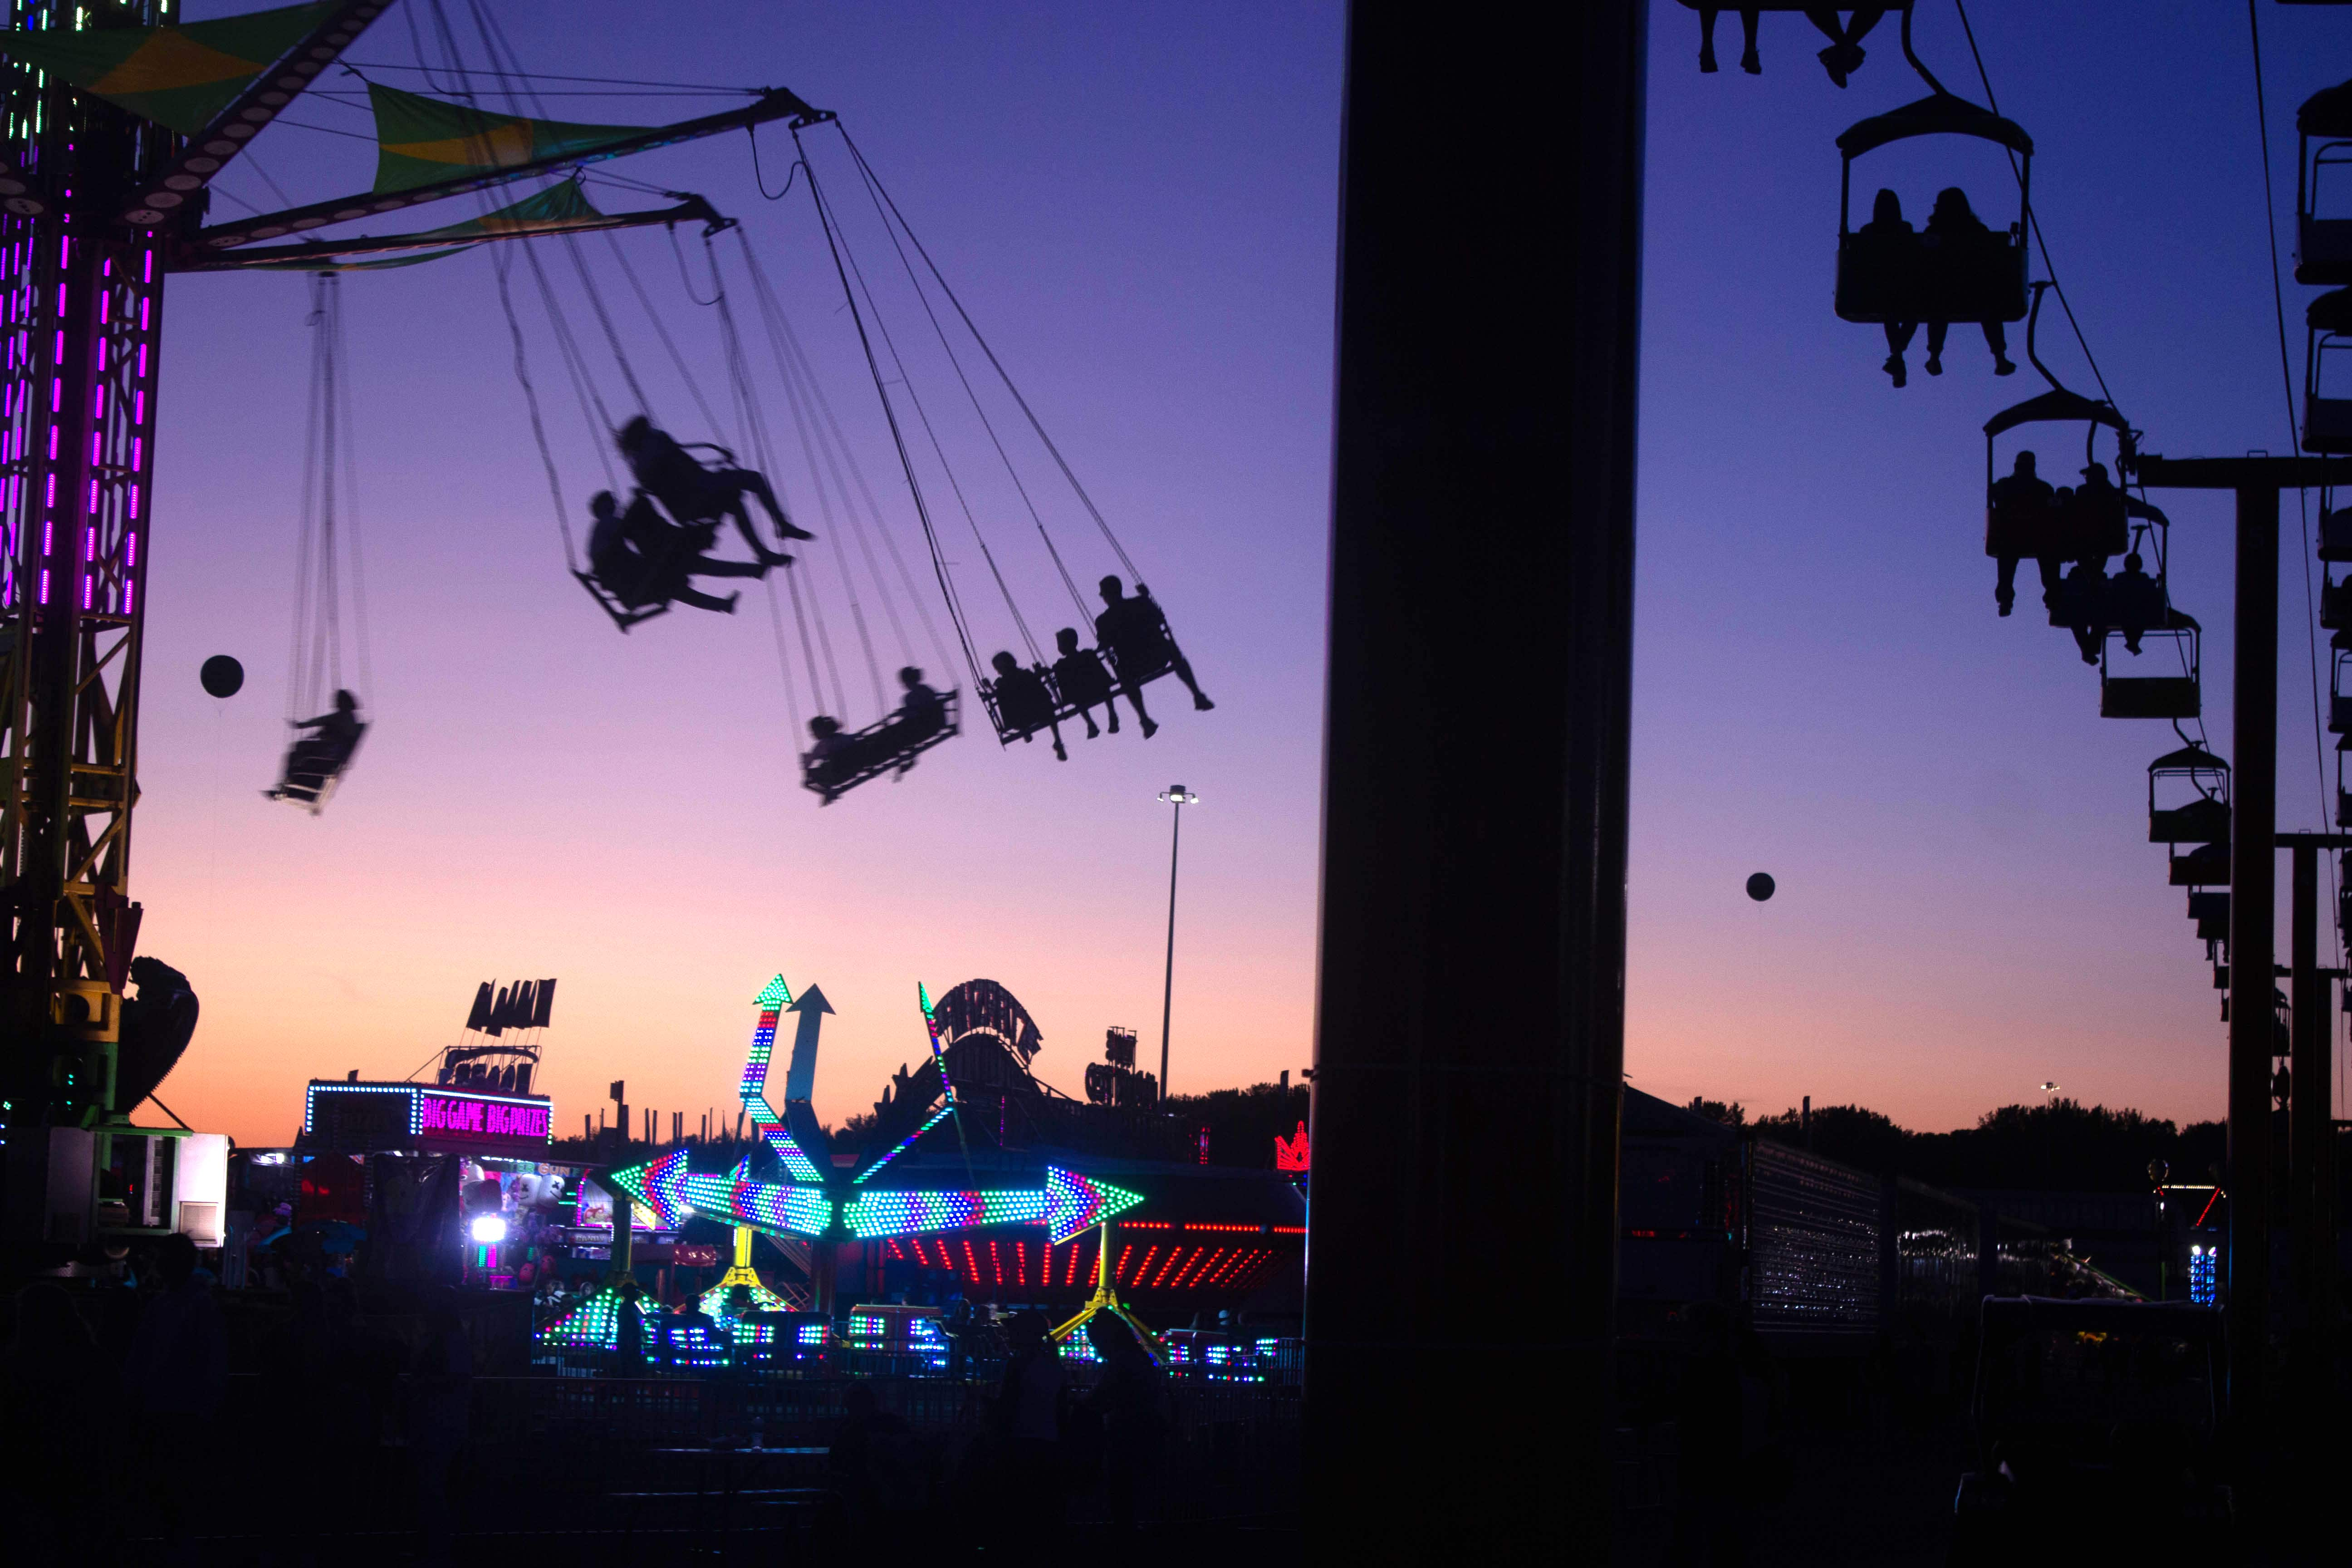 The New York State Fair midway came to life as the sun set on another day.